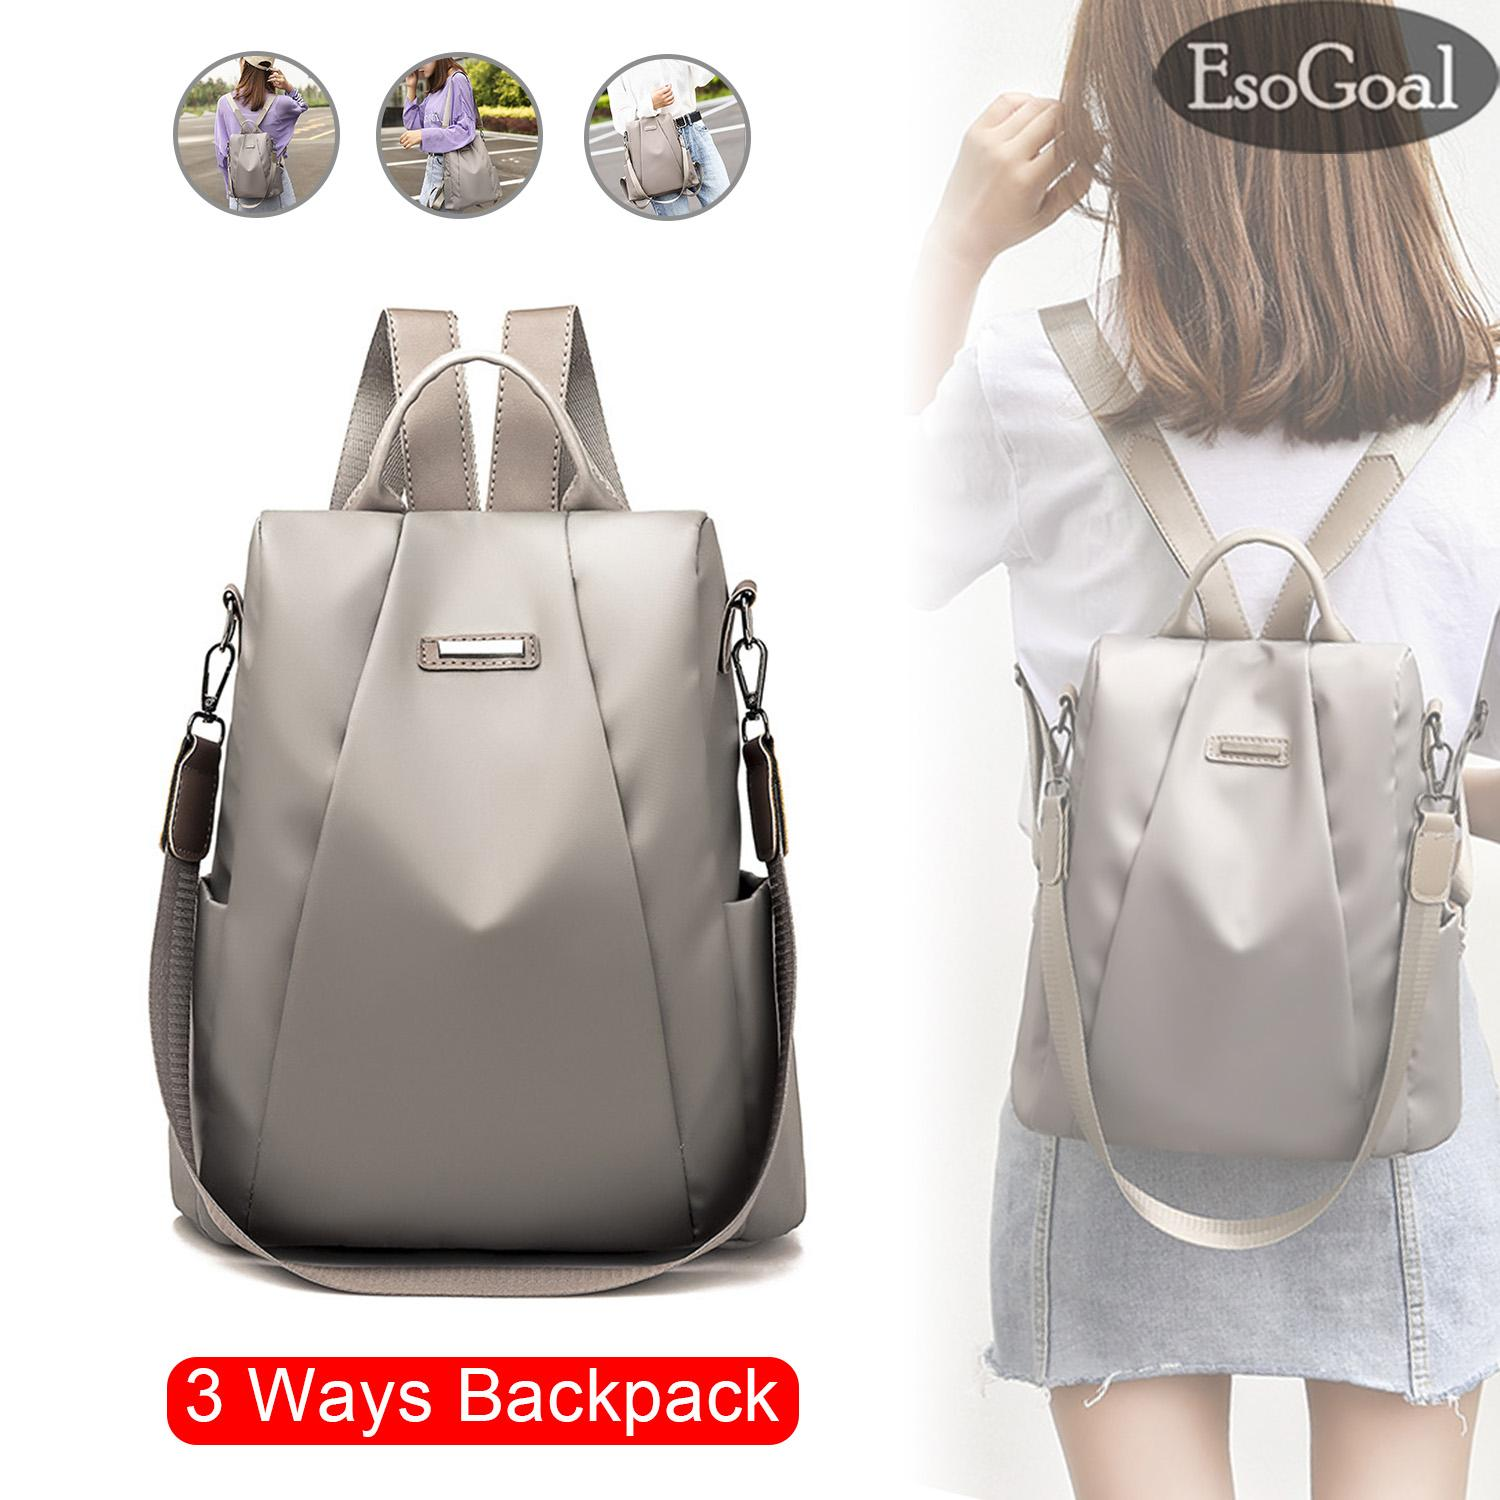 EsoGoal Fashion Women Backpack Shoulder Bag Korea Style Anti-theft Backpack  College School Bag For f2927fa4e3233